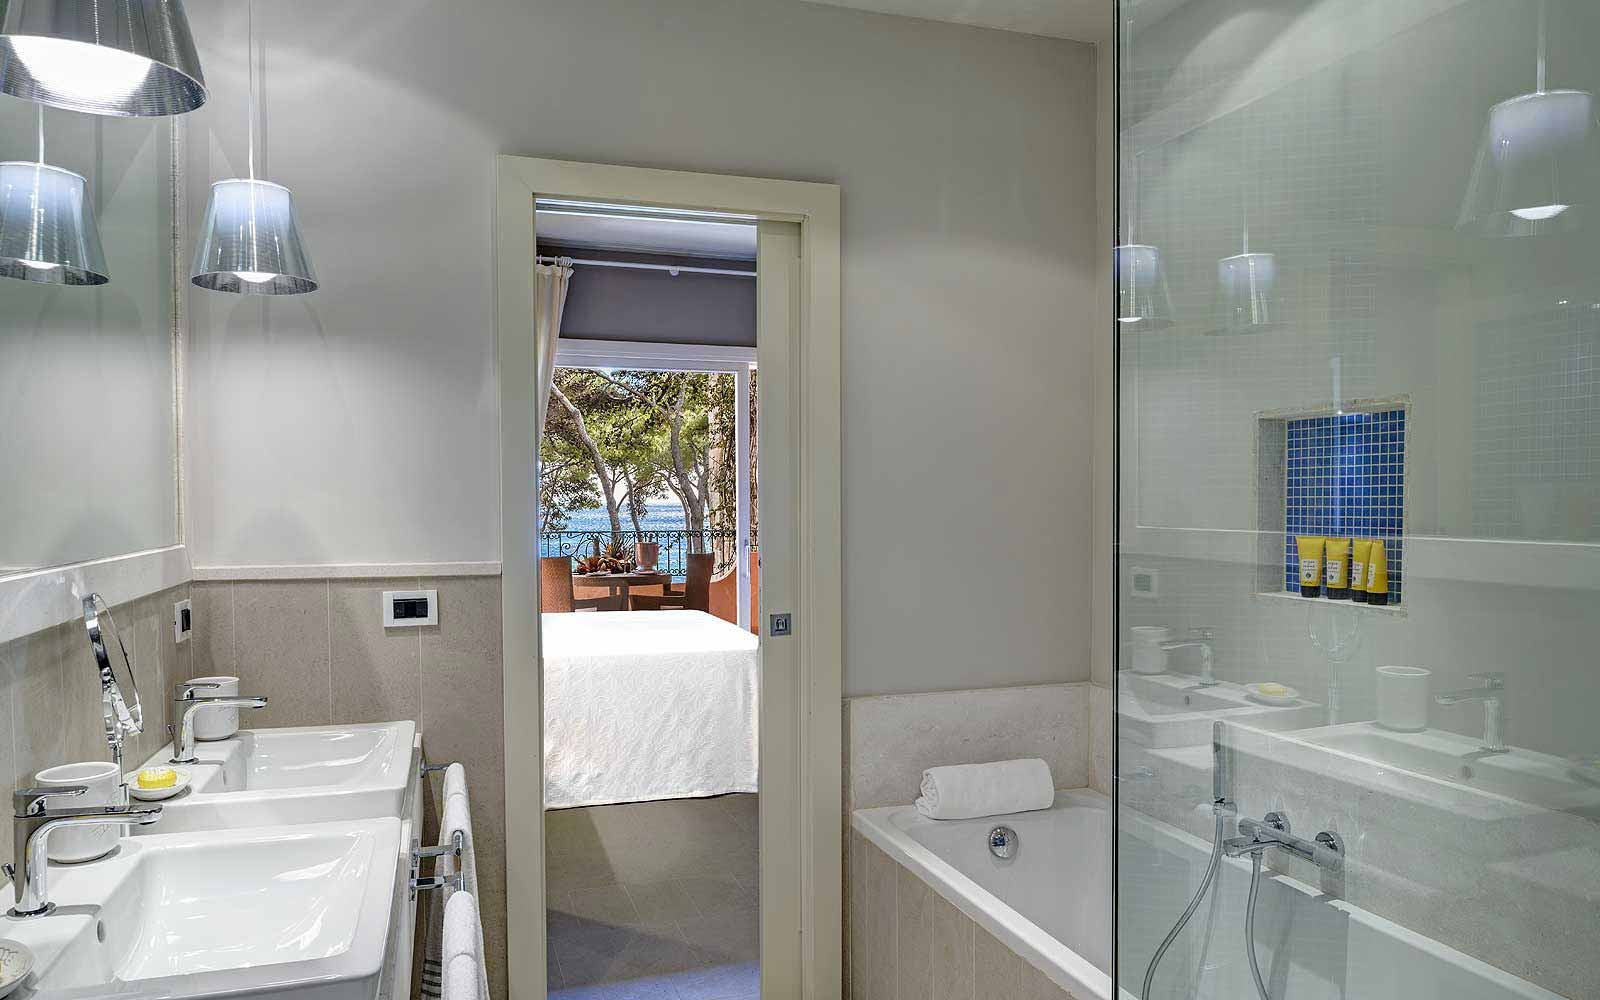 Executive mare bathroom at Forte Village Hotel Castello